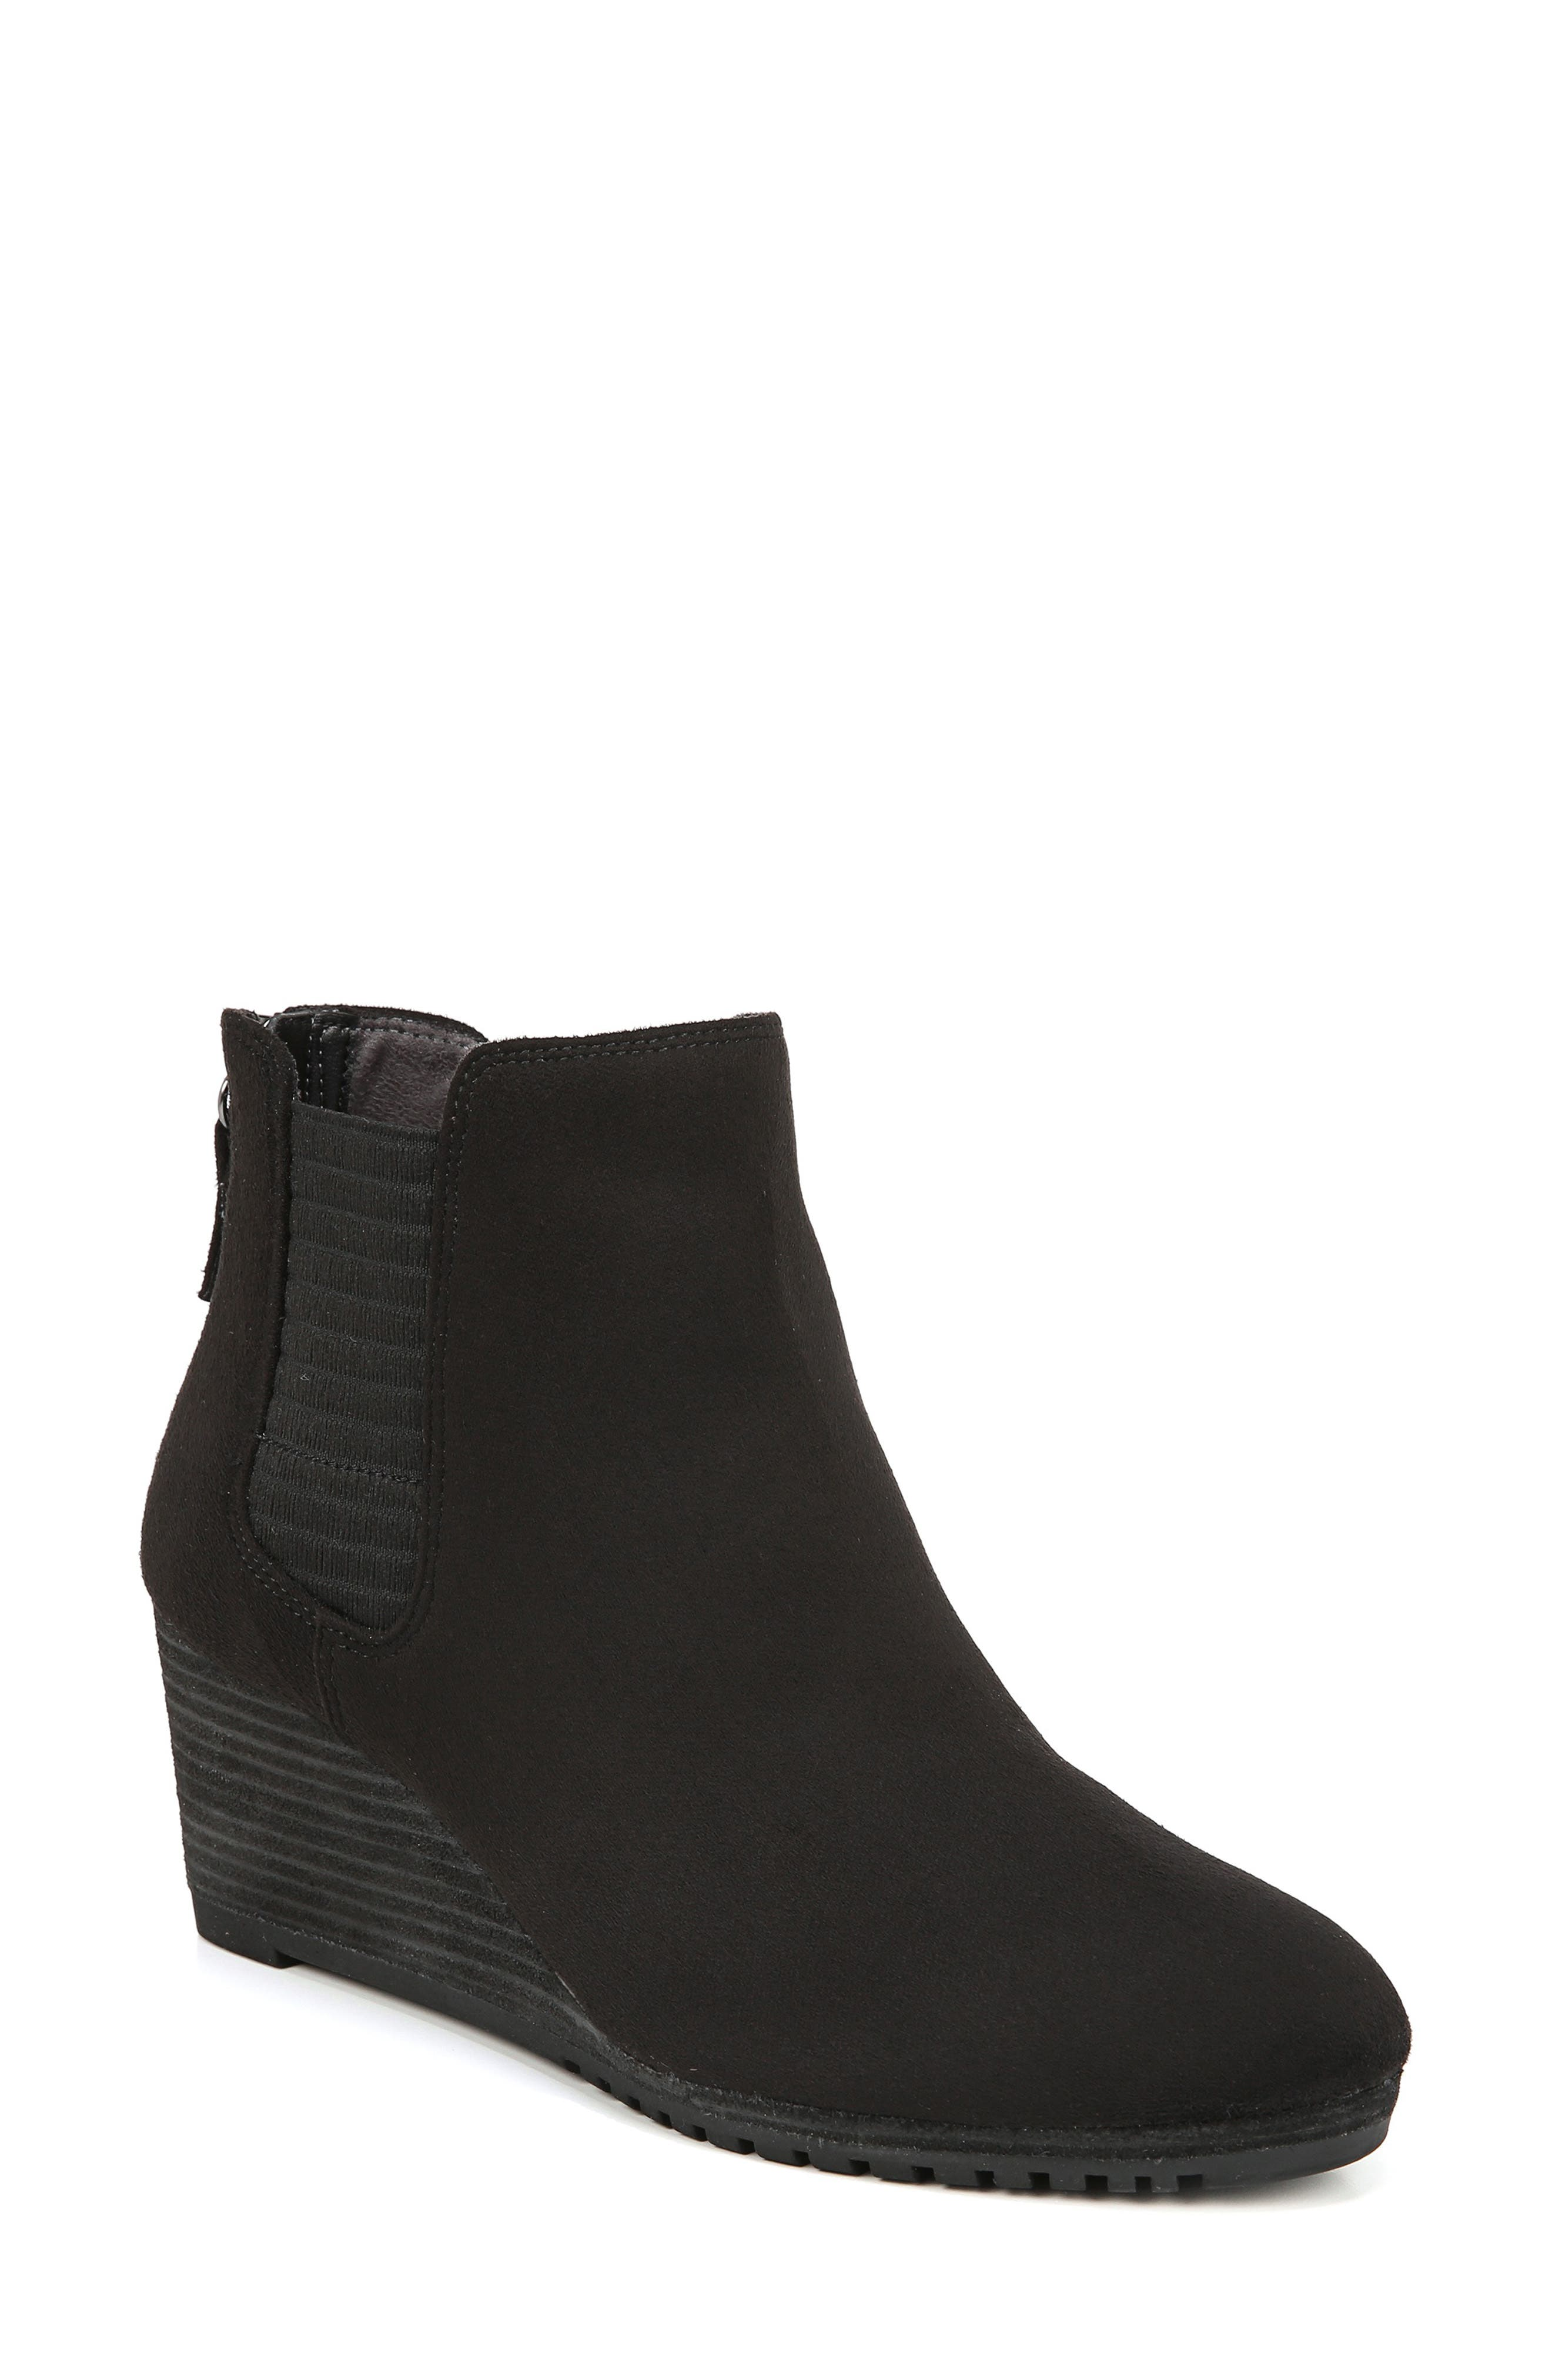 944ebe95074 Dr. Scholl s Wedge Boots for Women